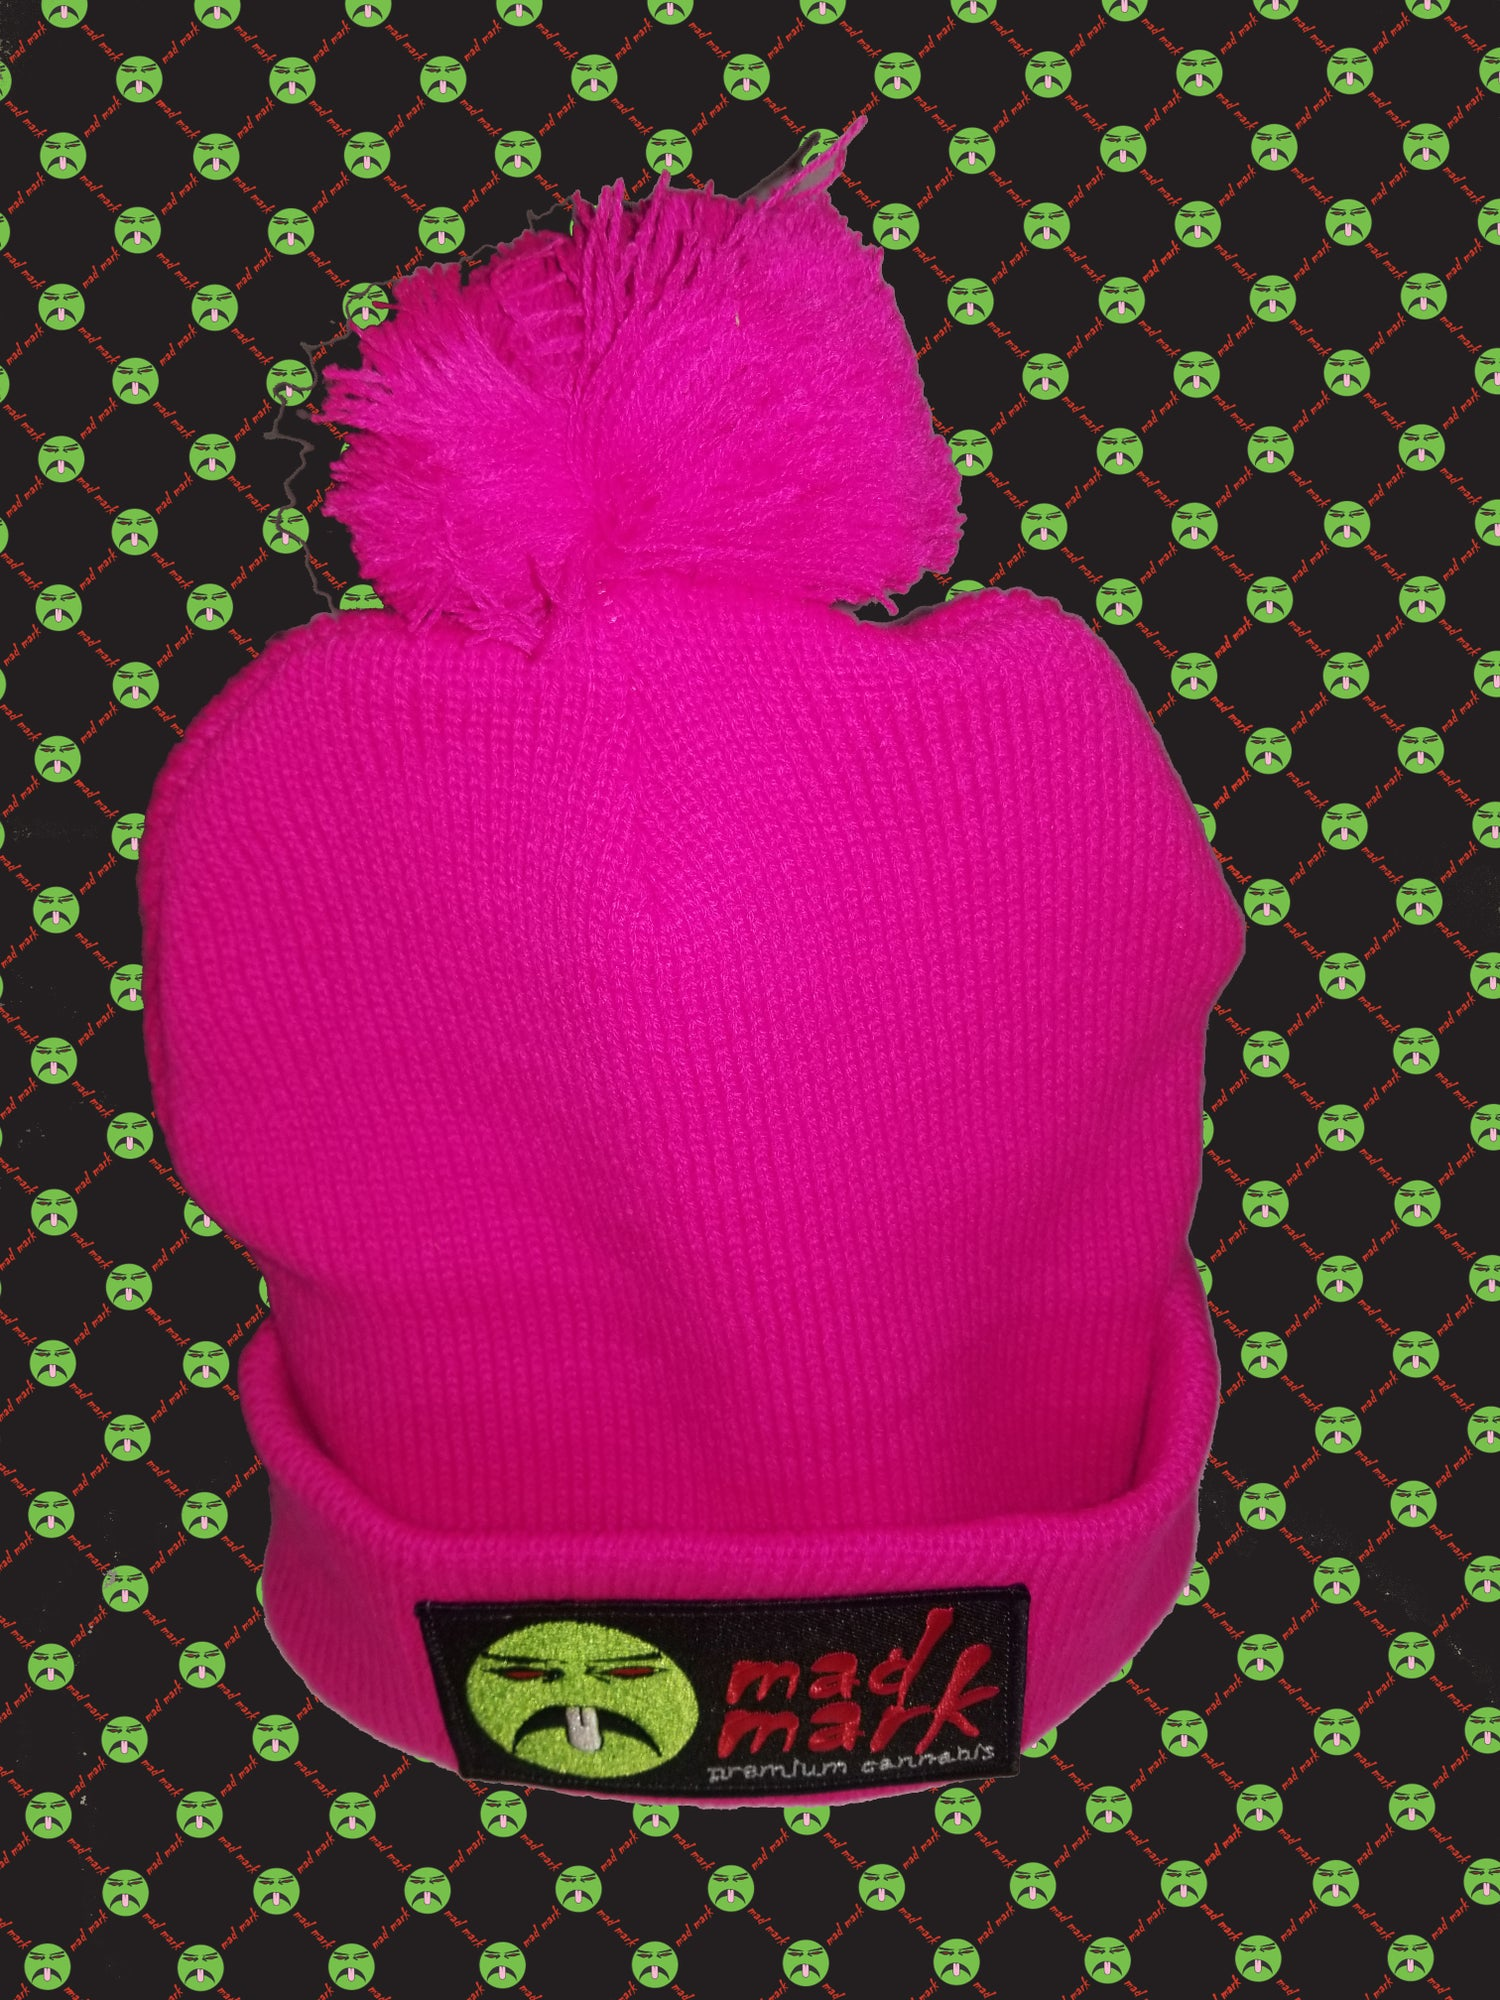 Image of puff ball patched beanie